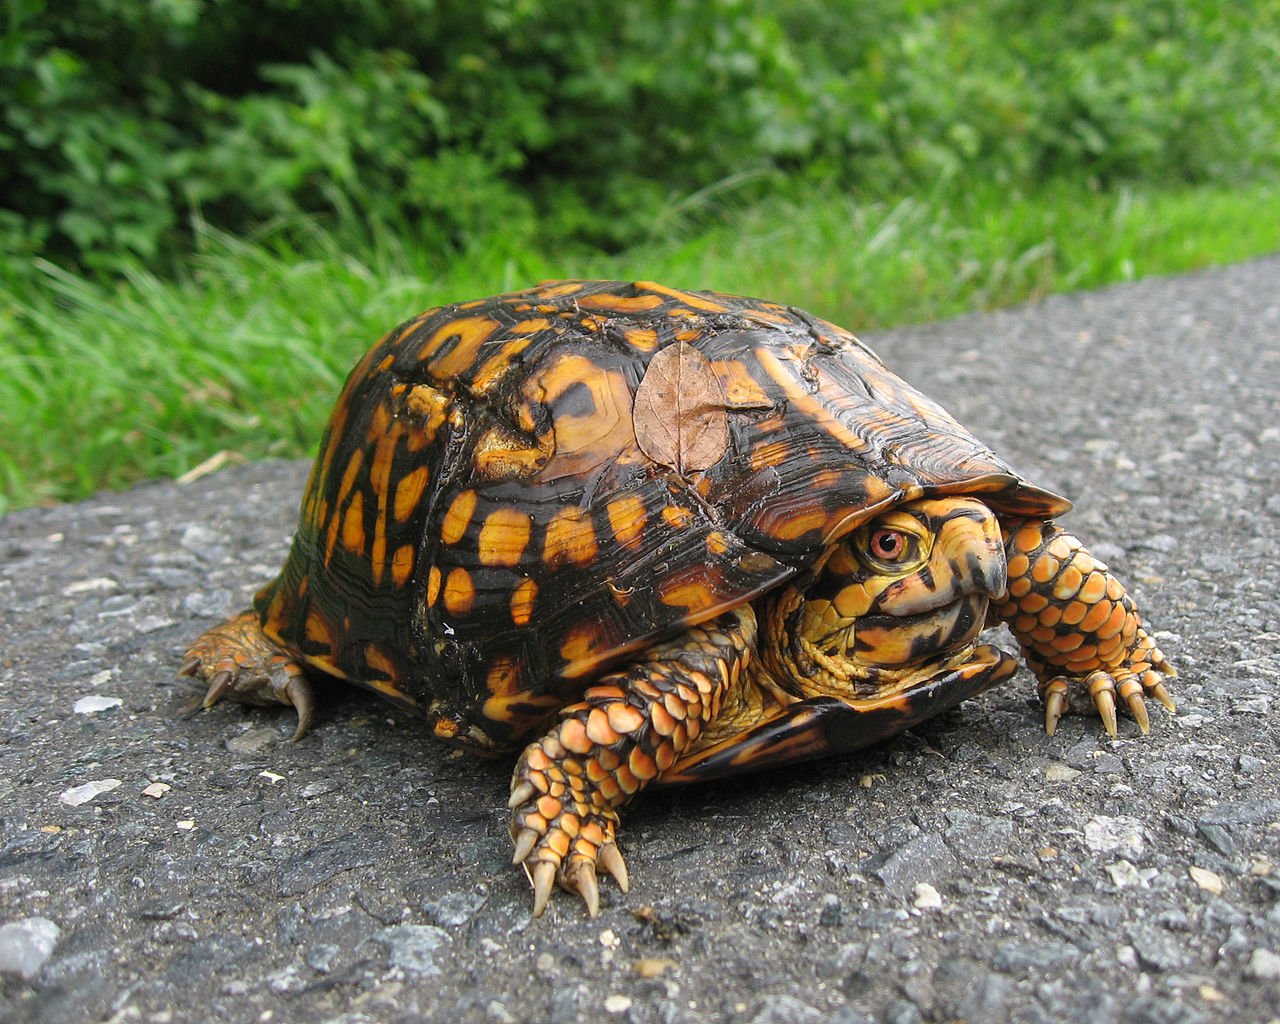 The eastern box turtle, which is commonly kept as a pet, is smaller than the gopher tortoise.  Credit: Eastern Box Turtle, Terrapene carolina carolina. (Jim Lynch, NPS; cc by-sa 2.0) website for more info on box tortoises:  https://www.welcomewildlife.com/all-about-box-turtles/#prettyPhoto